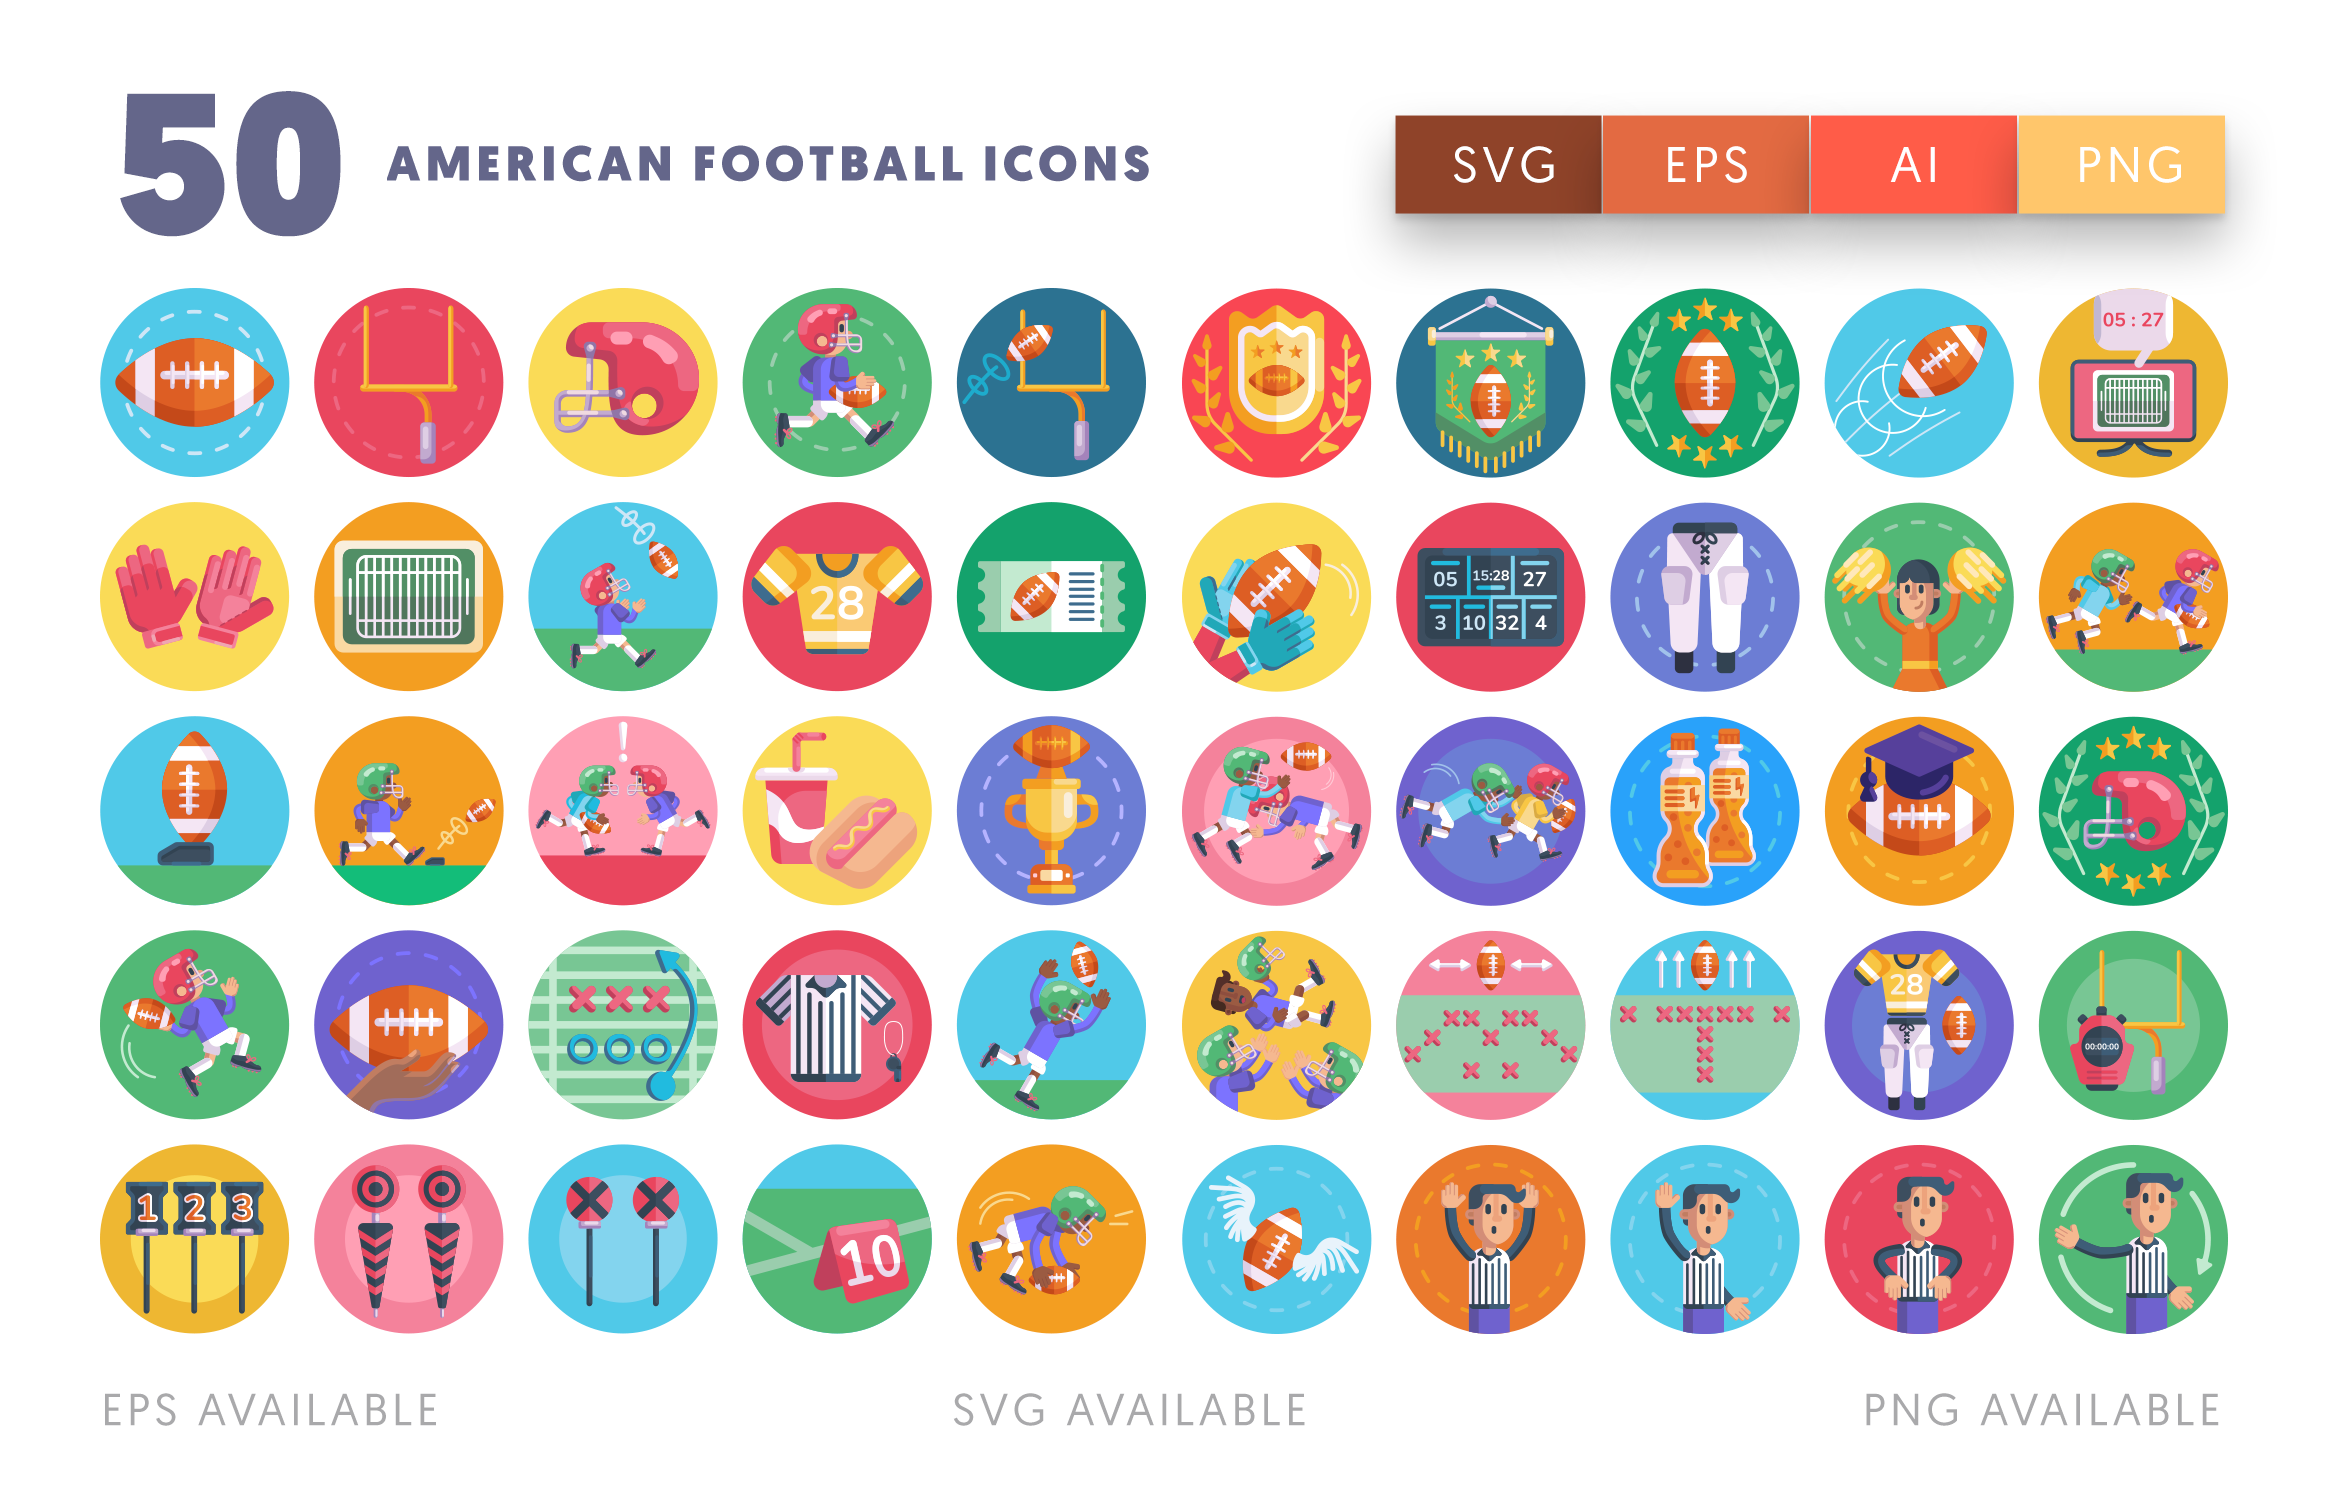 American Football icons png/svg/eps